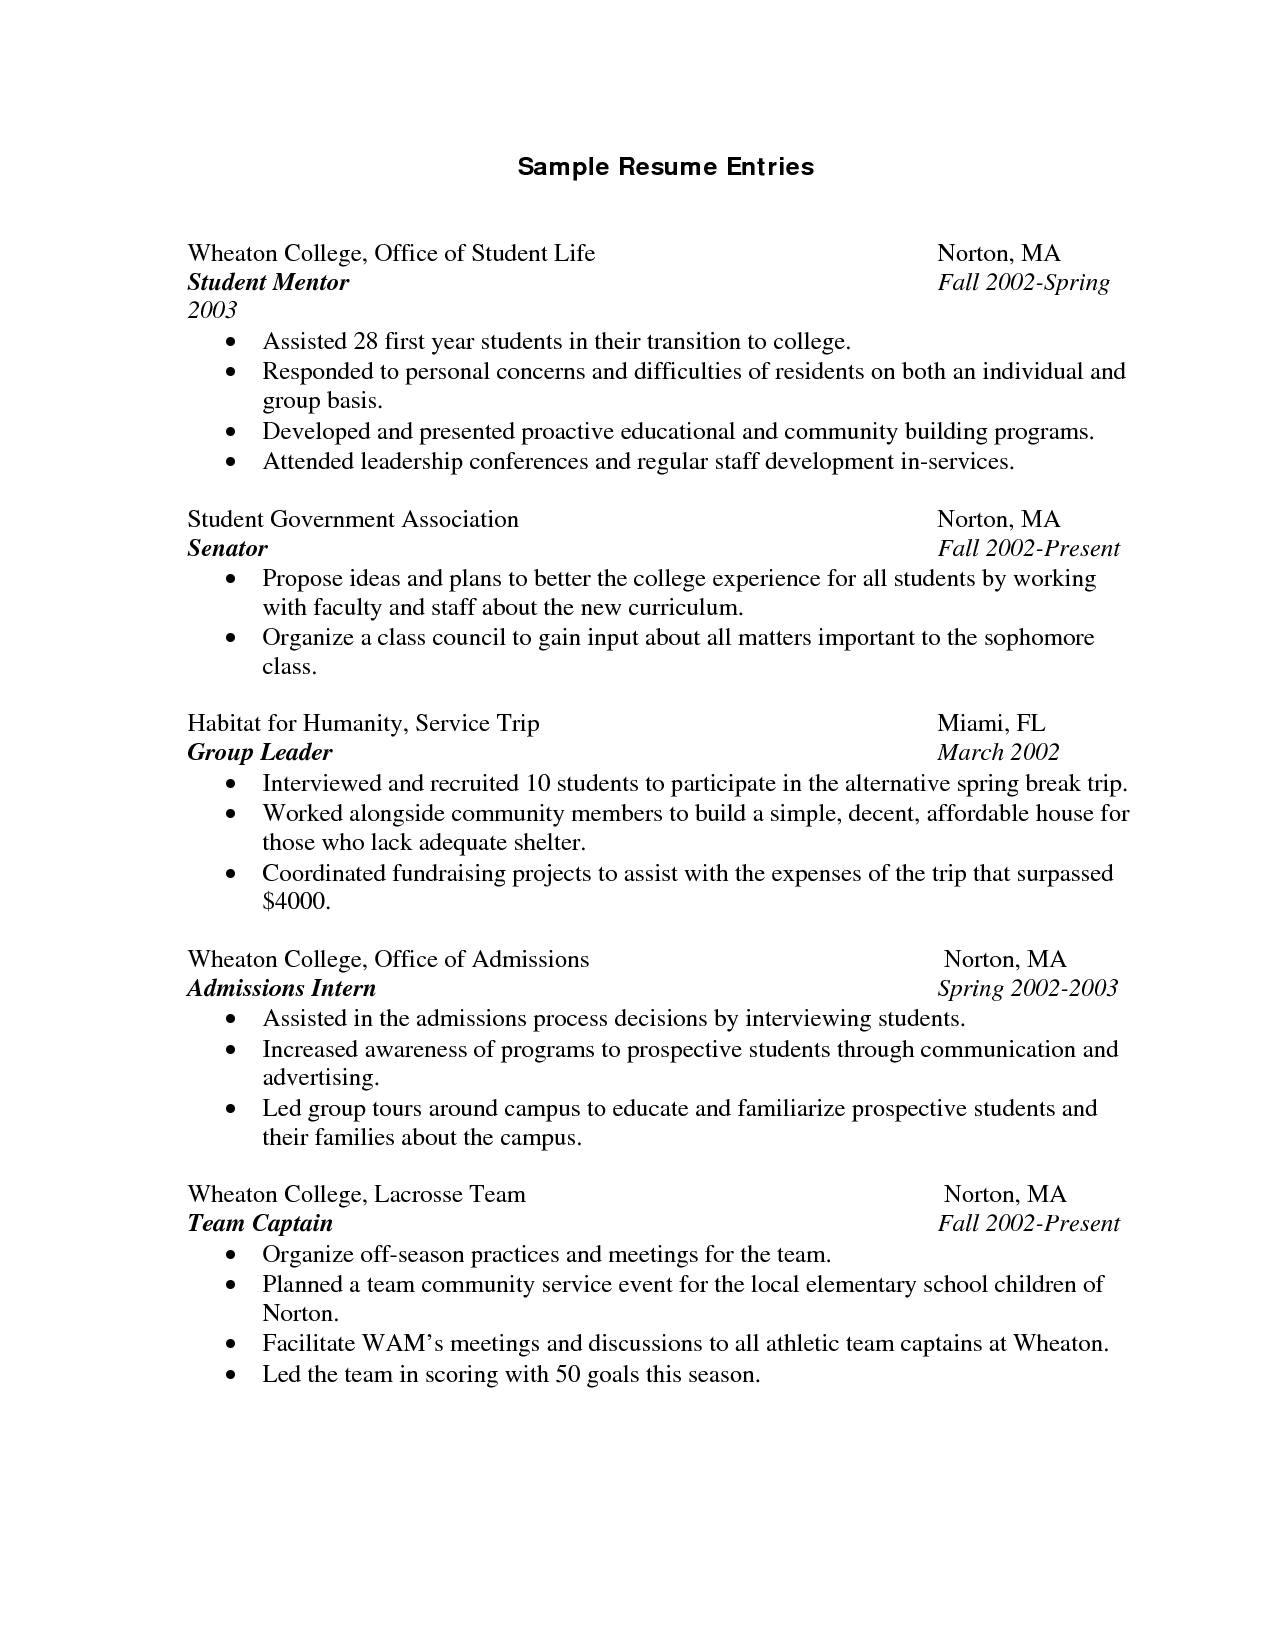 Sample Resume For College Student Resume Template For College Students  Httpwwwresumecareer